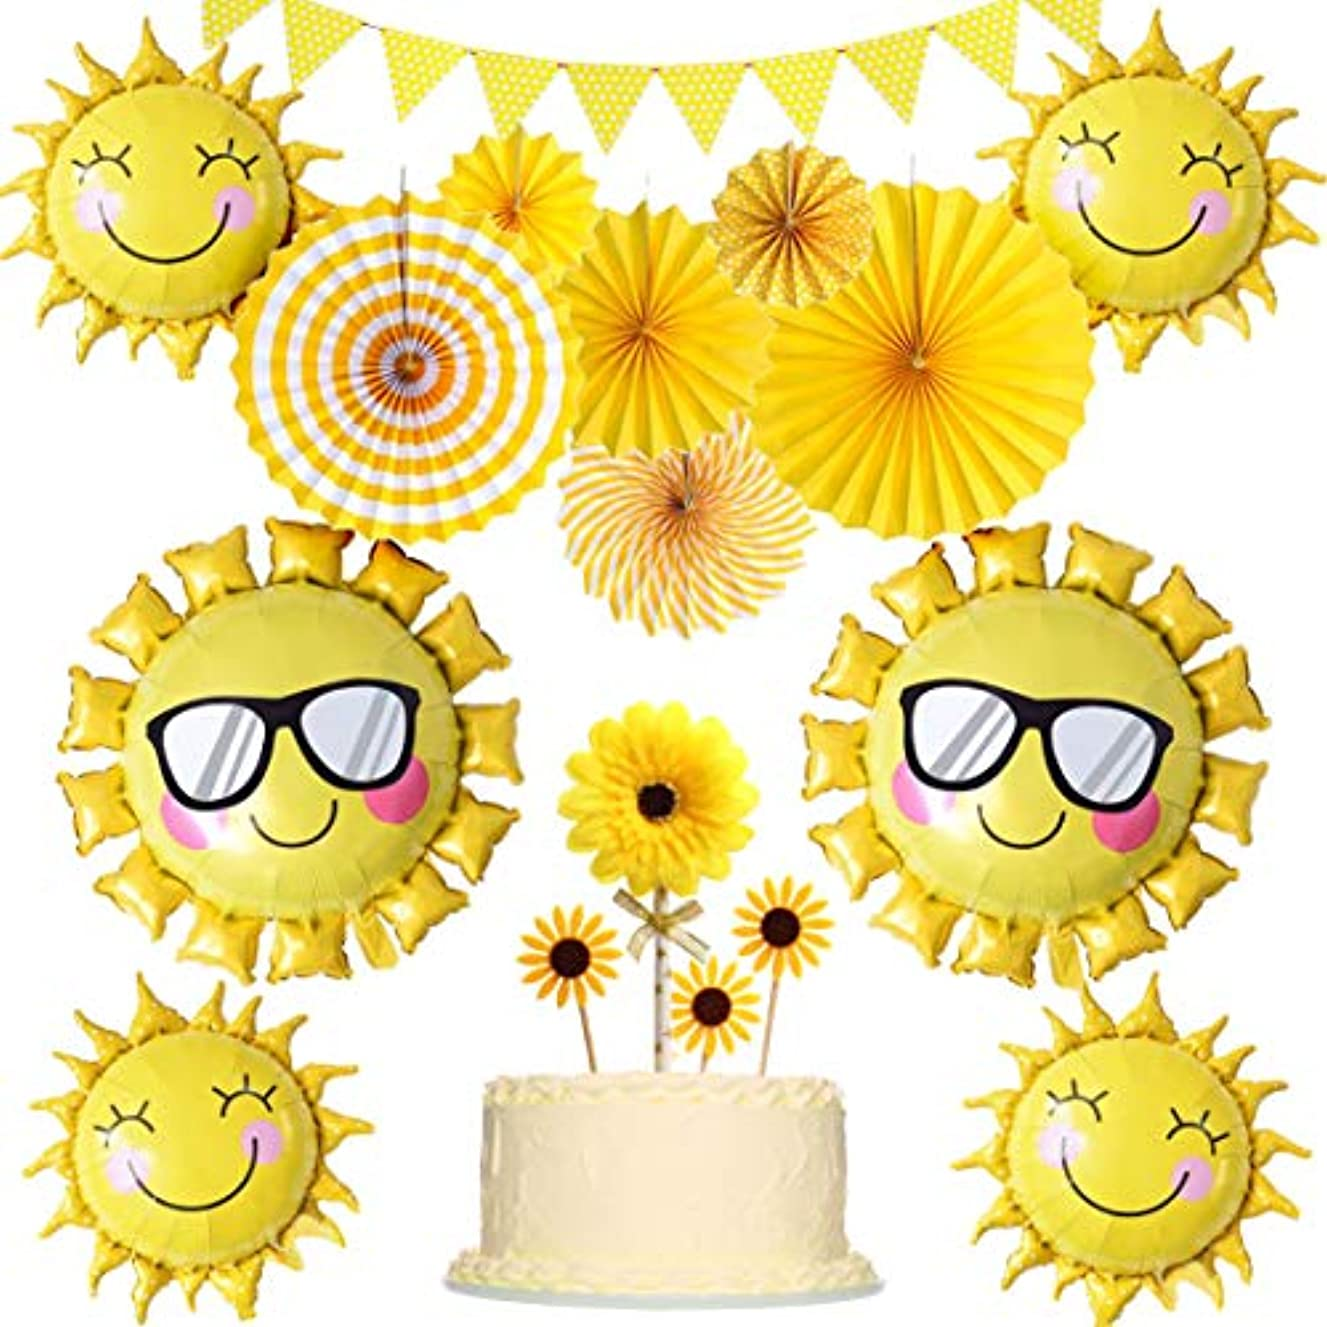 JOYMEMO Sunshine Party Decorations Yellow Hanging Paper Fans Sunflower Cake Toppers and Balloons for Sunny Summer Theme Party Birthday Baby Shower Supplies